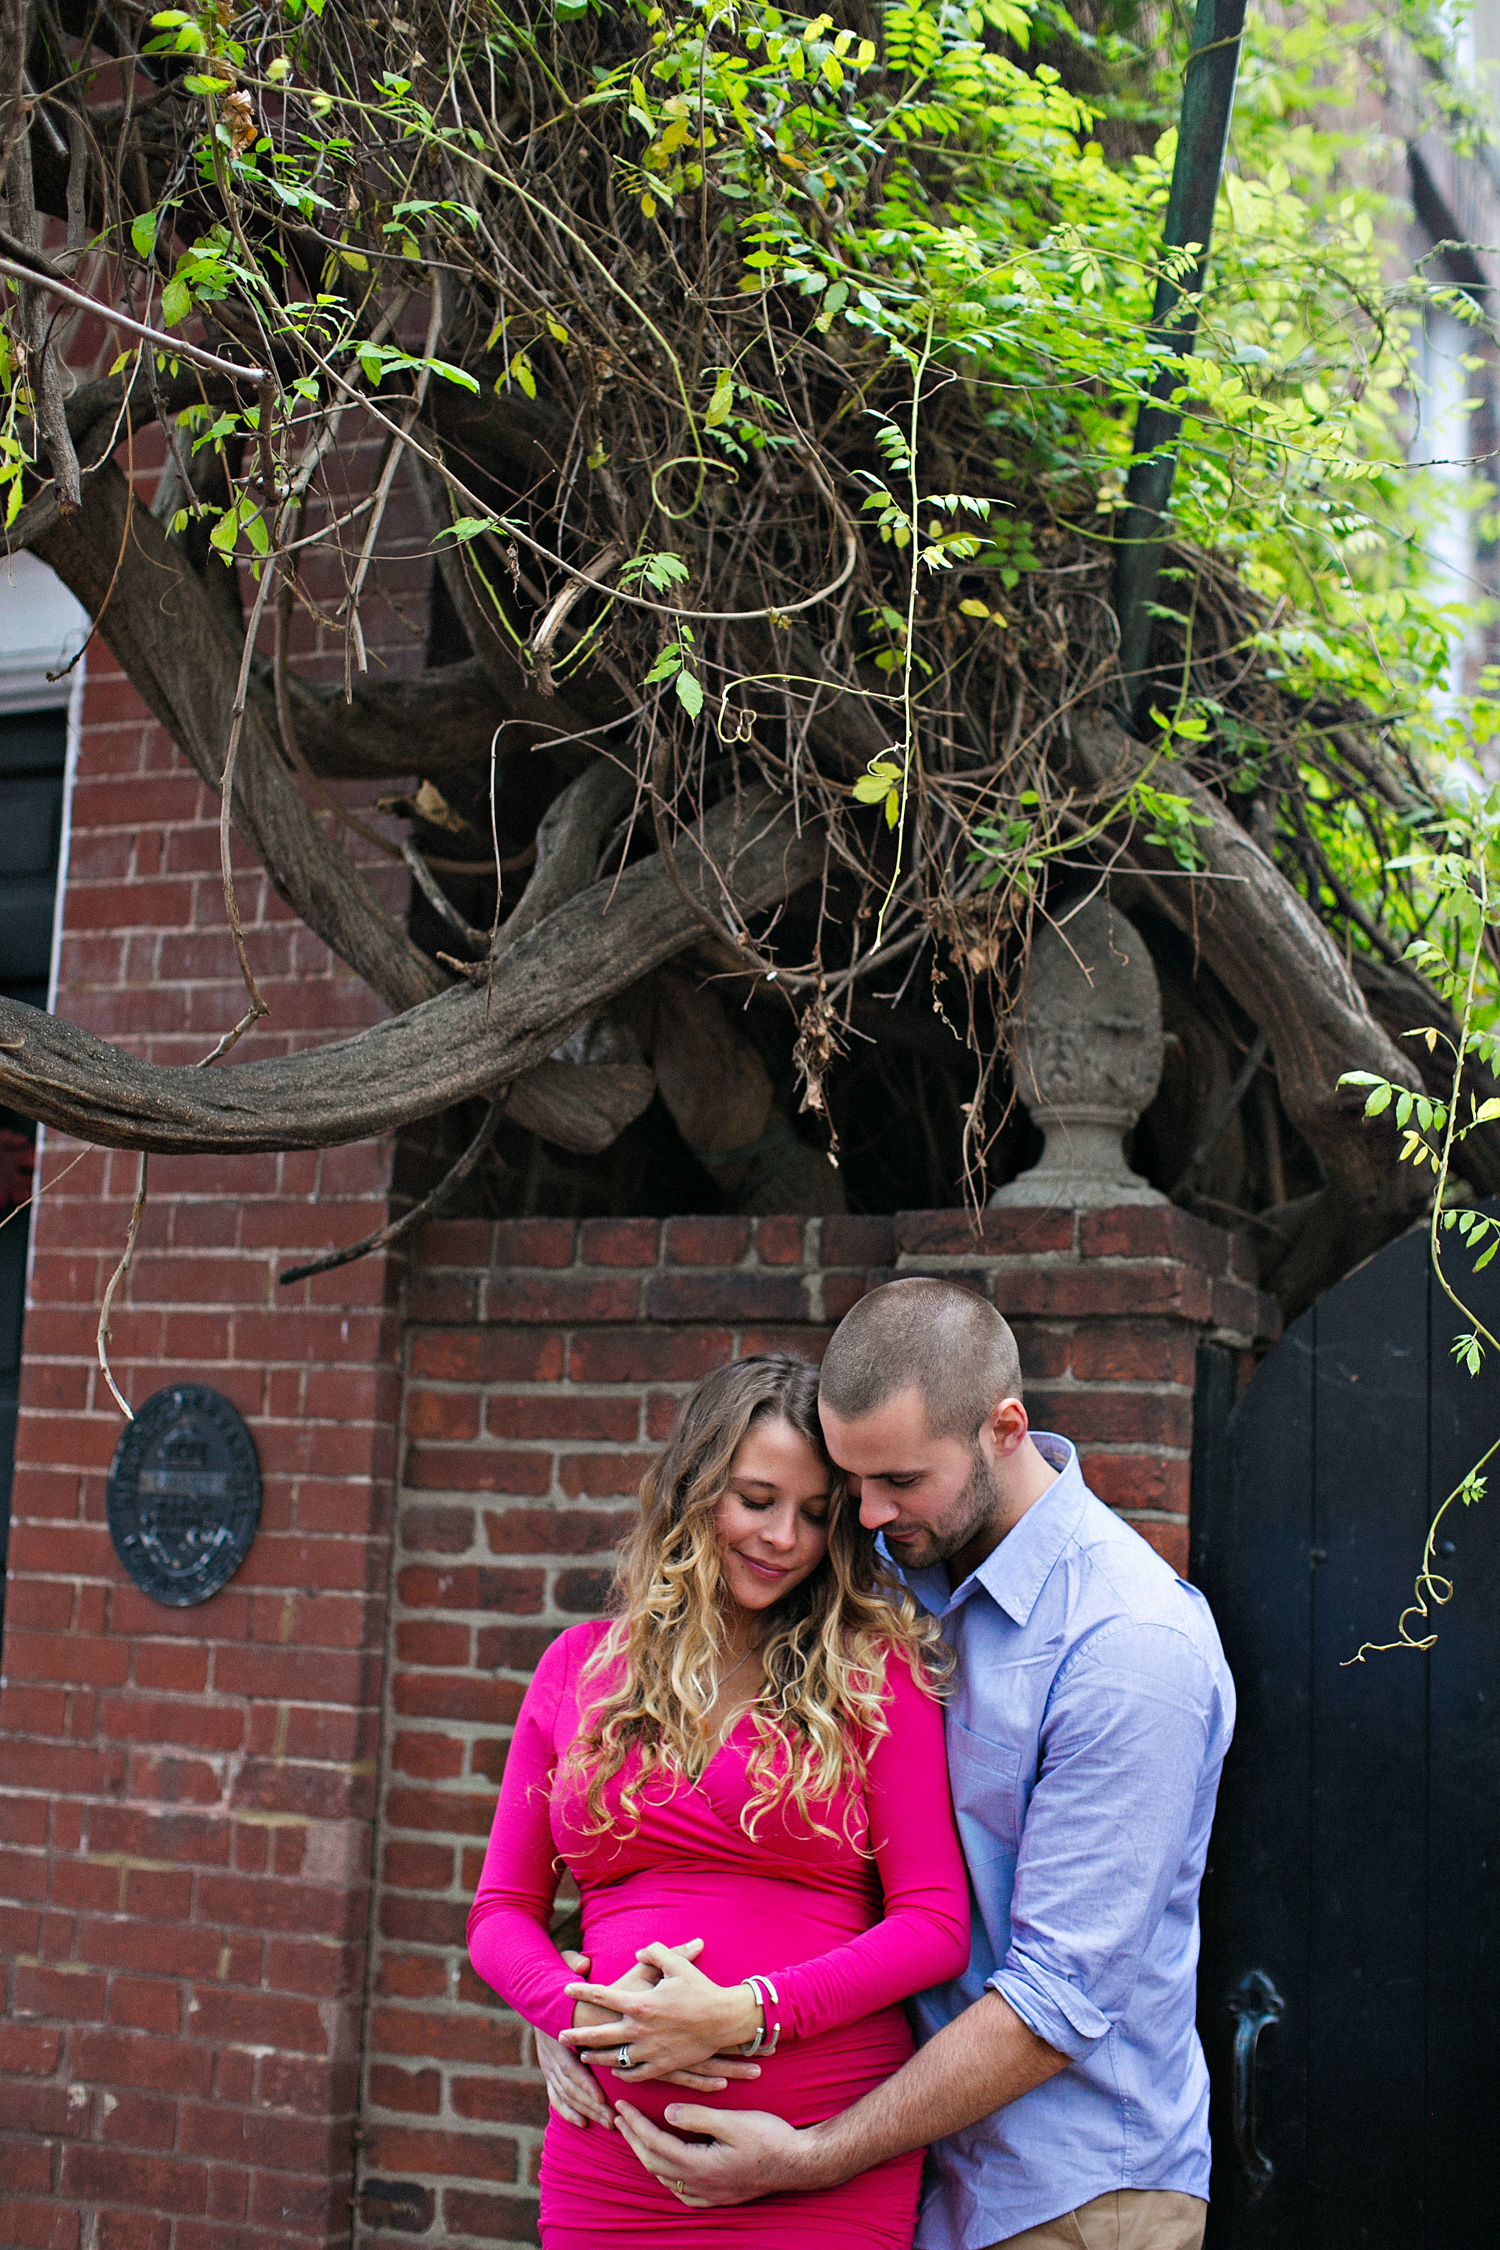 516-old-town-alexandria-maternity-photography.jpg